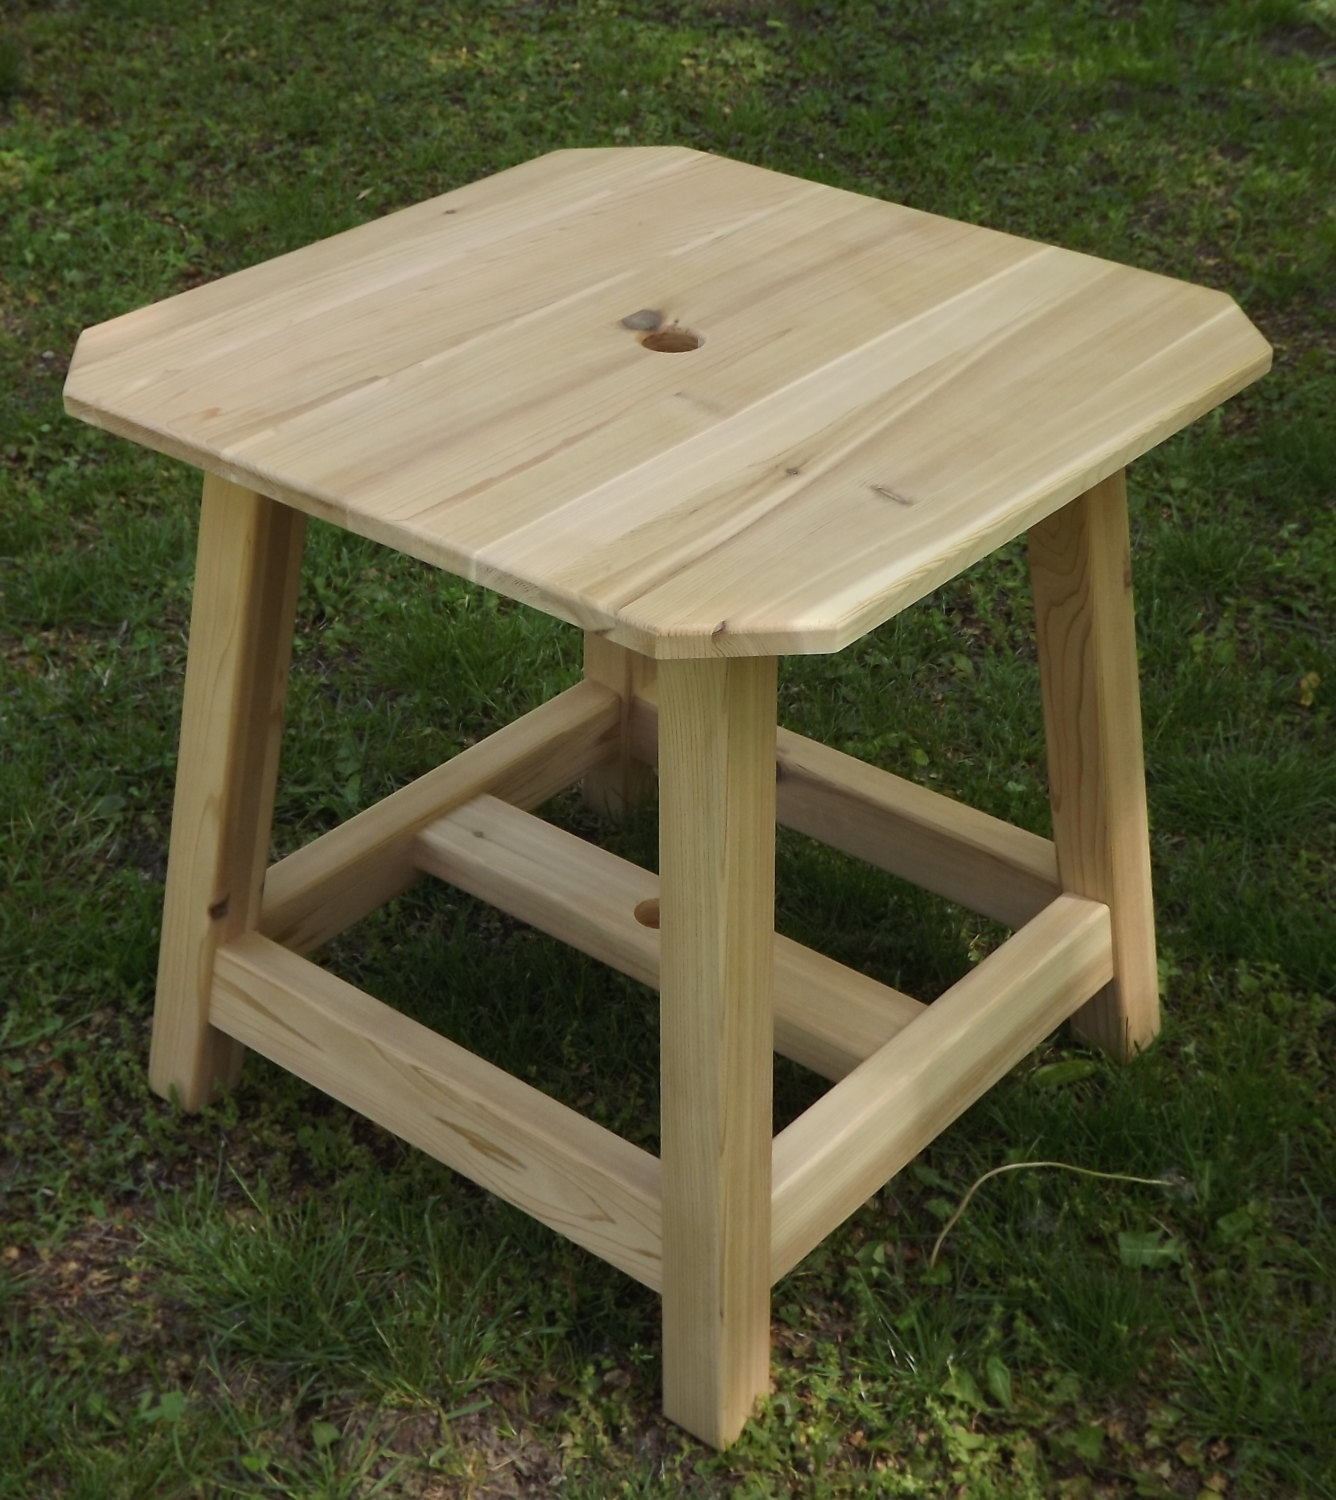 Most Popular Accessories: Cute Picture Of Furniture And Accessories For Lawn Throughout Patio Umbrella Stand Side Tables (View 9 of 20)